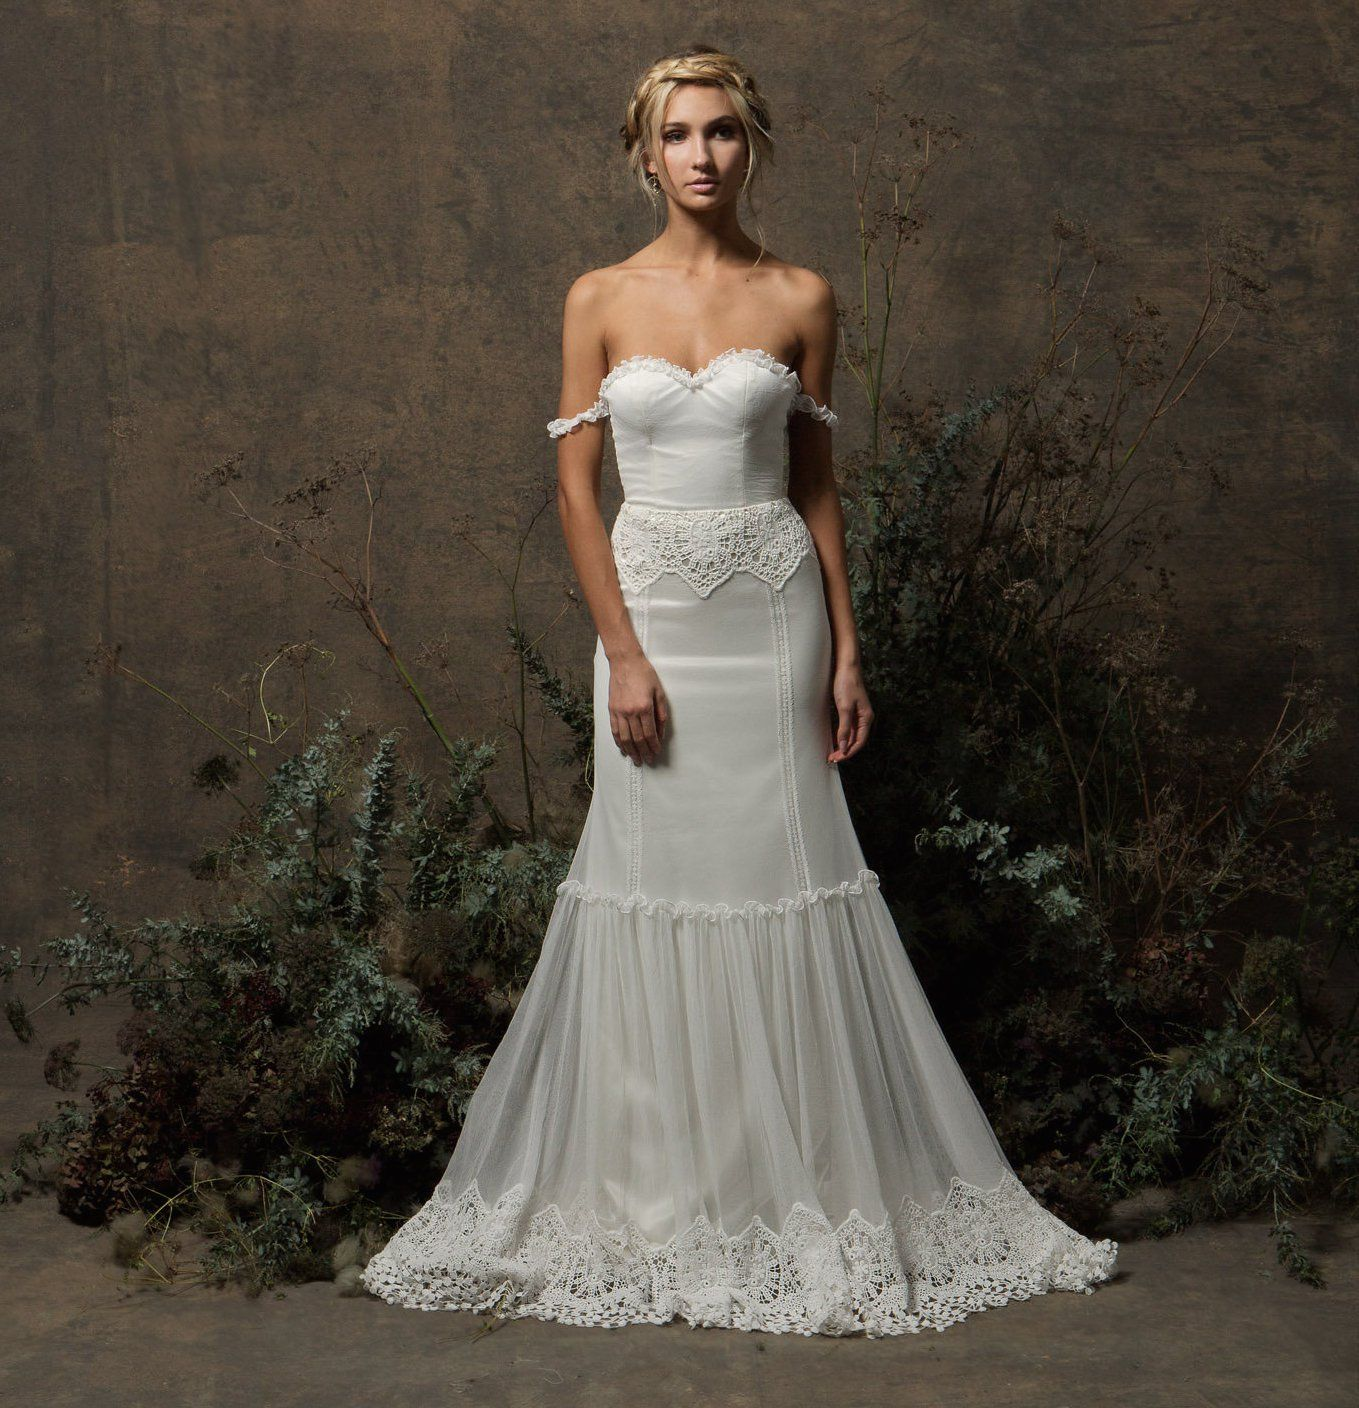 The Perfect Wedding Gown: Freya Tulle Lace Gown - FINAL In 2019